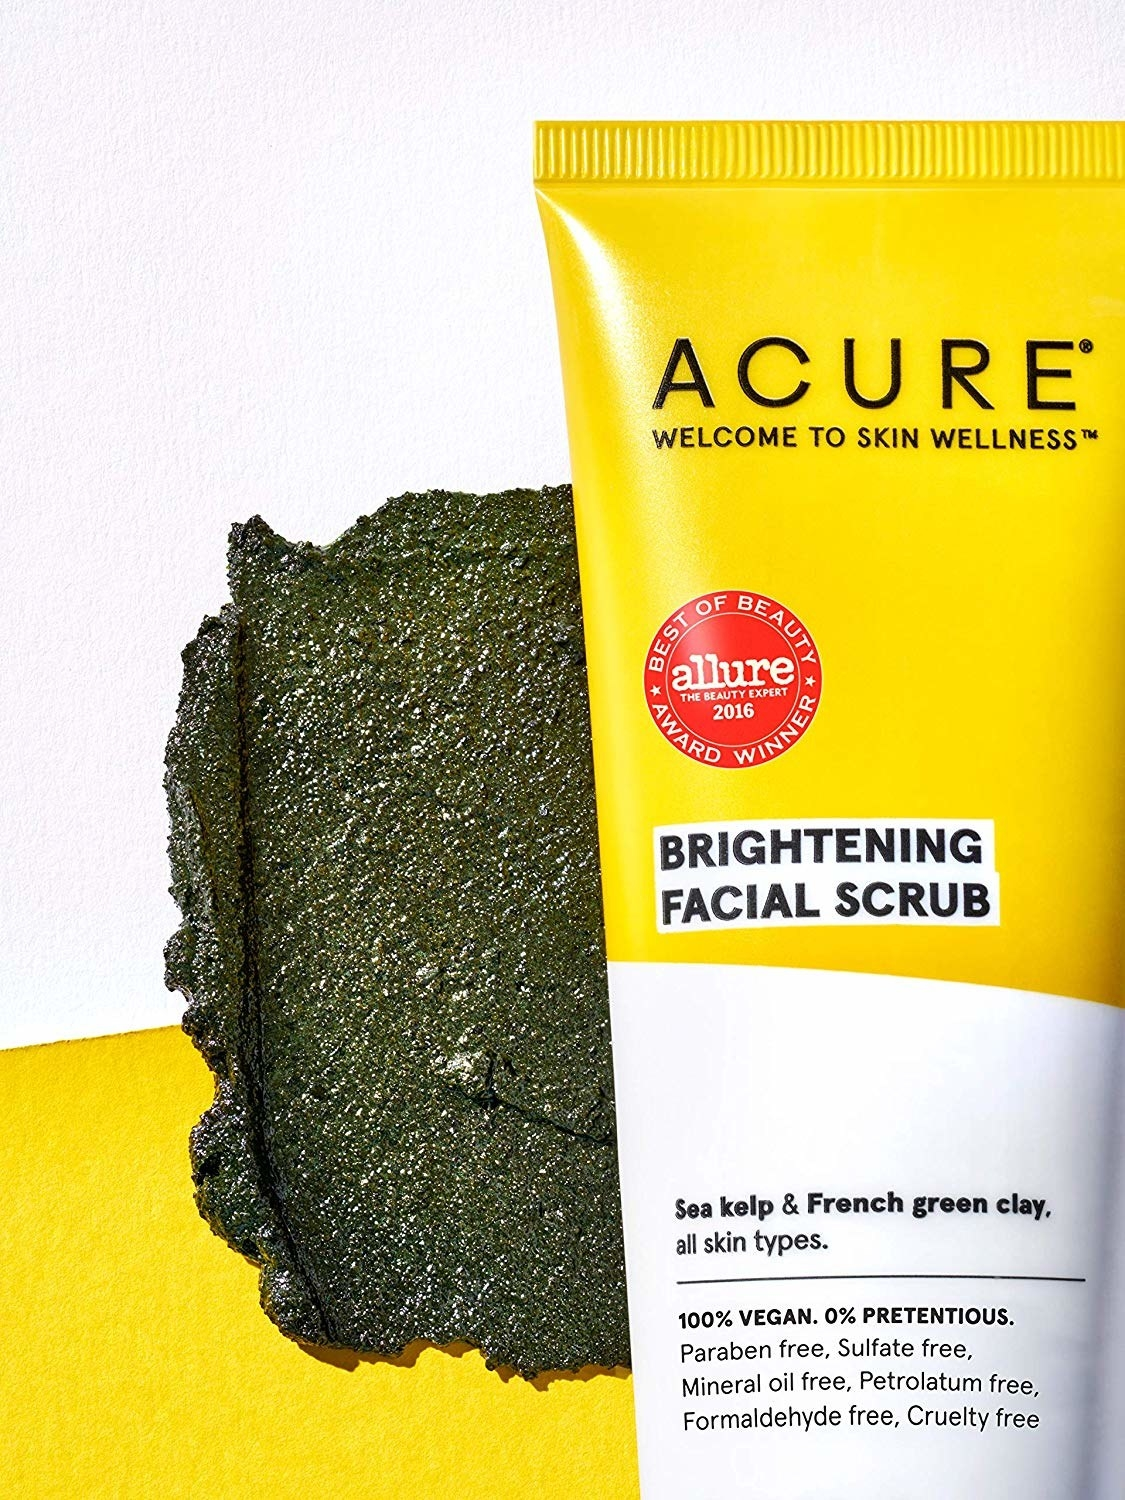 A tube of facial scrub with a small swatch of the product beside it